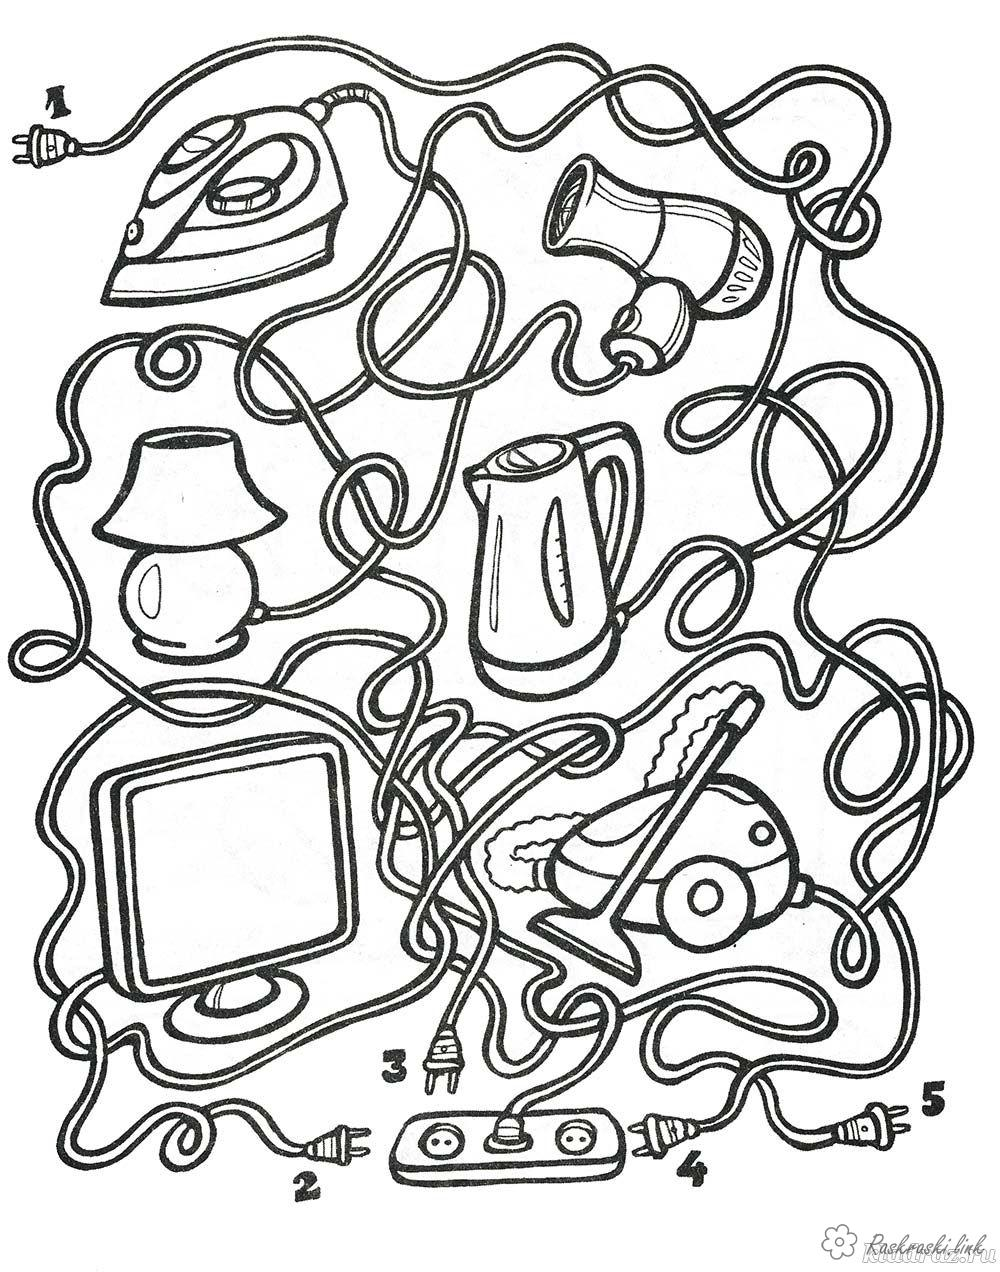 Coloring coloring pages maze Kids coloring pages maze